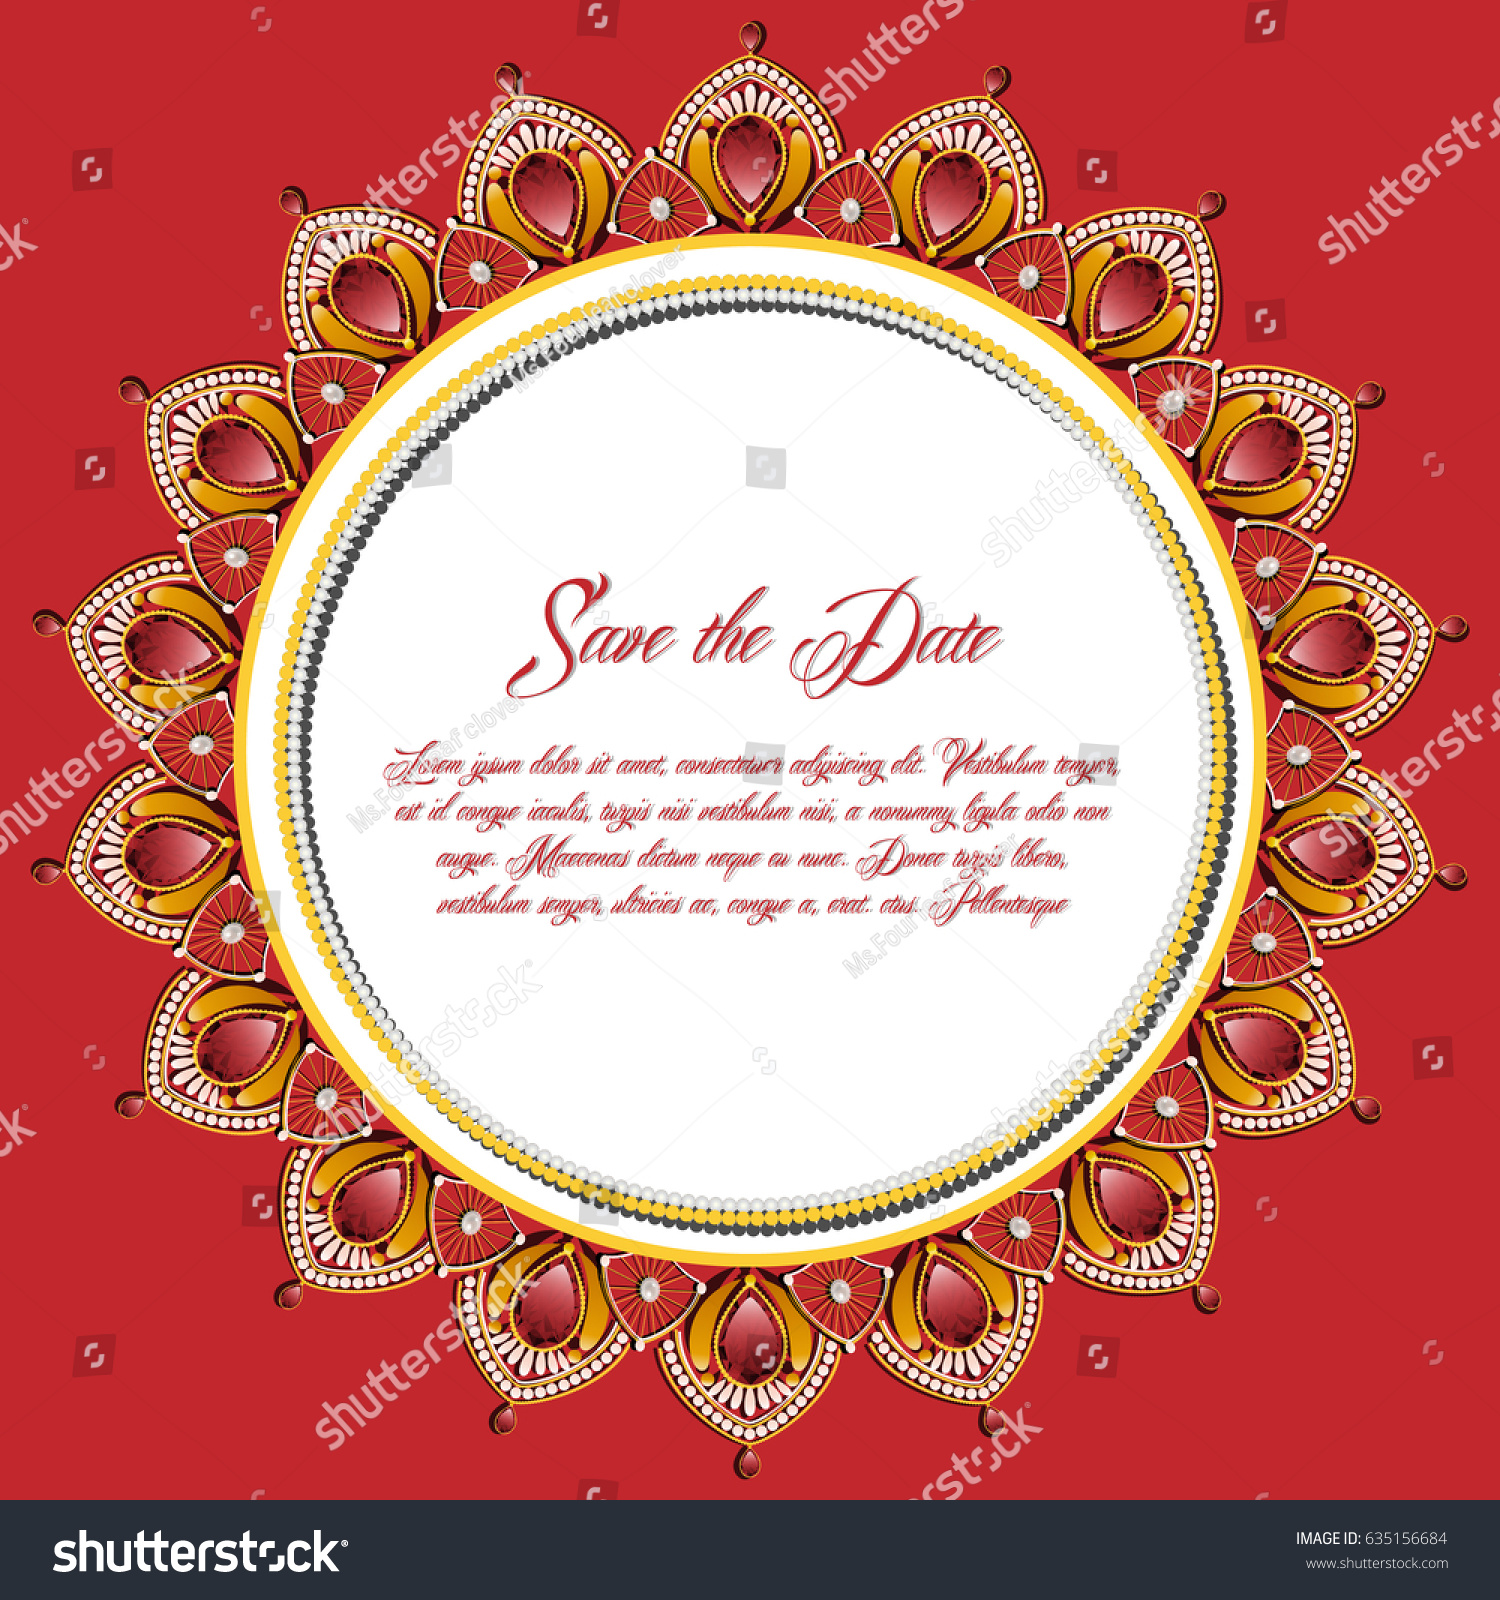 Vintage Greeting Card Gold Jewelry Decoration Stock Vector 635156684 ...